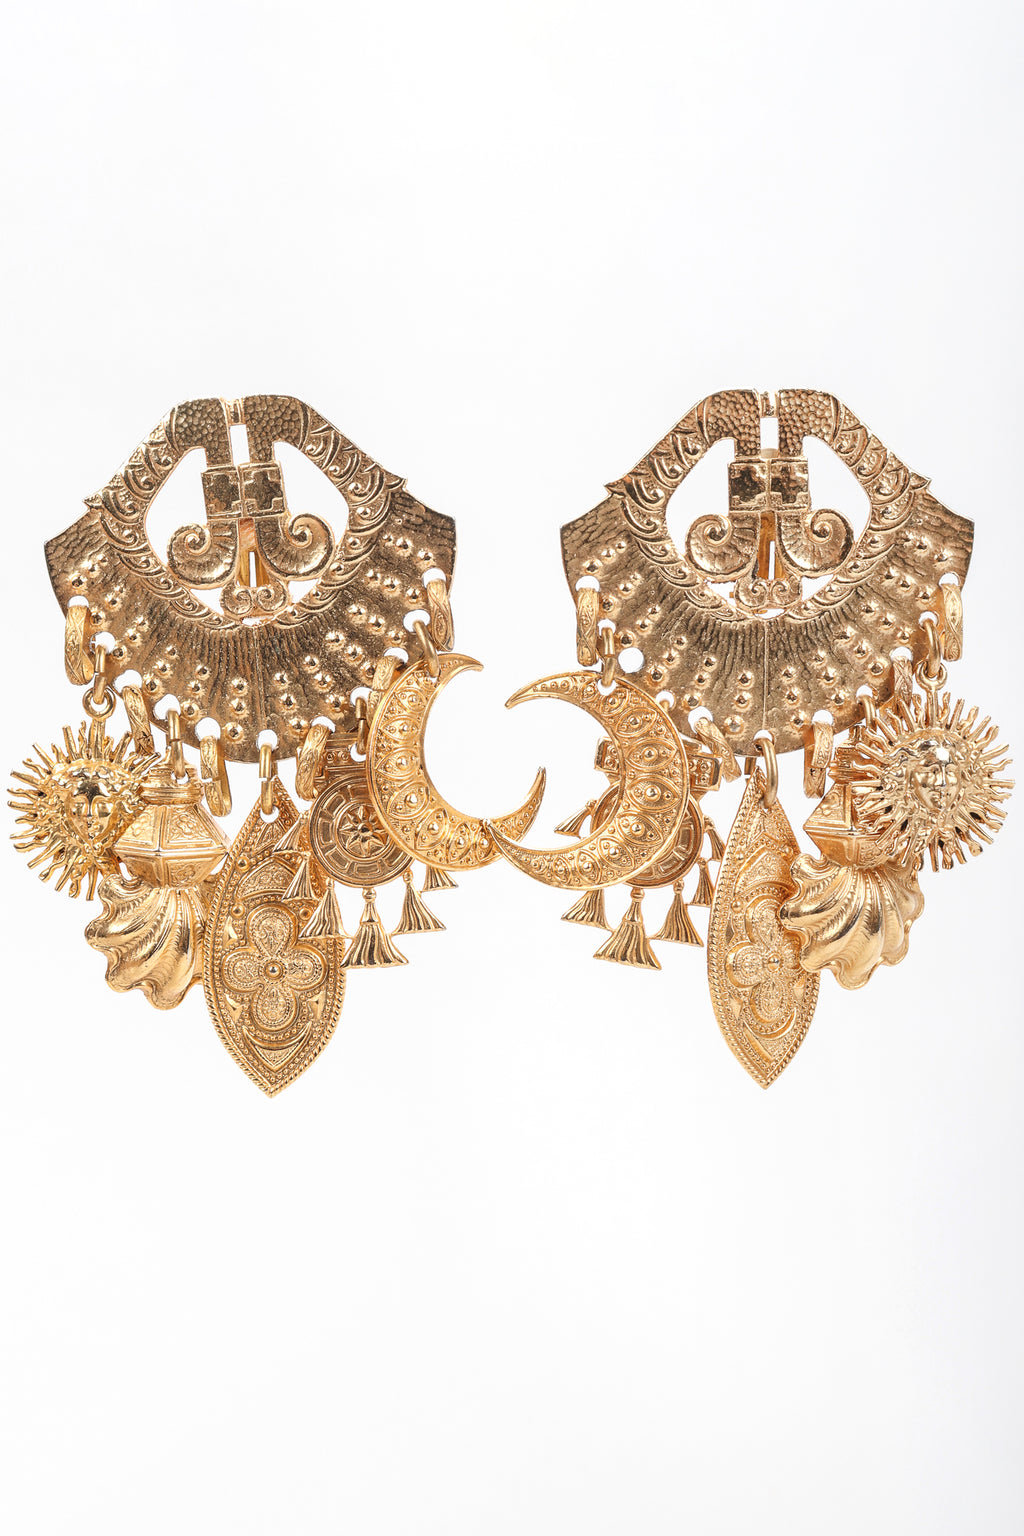 Recess Vintage Edouard Rambaud Gold Etruscan Chandelier Earrings, white Background